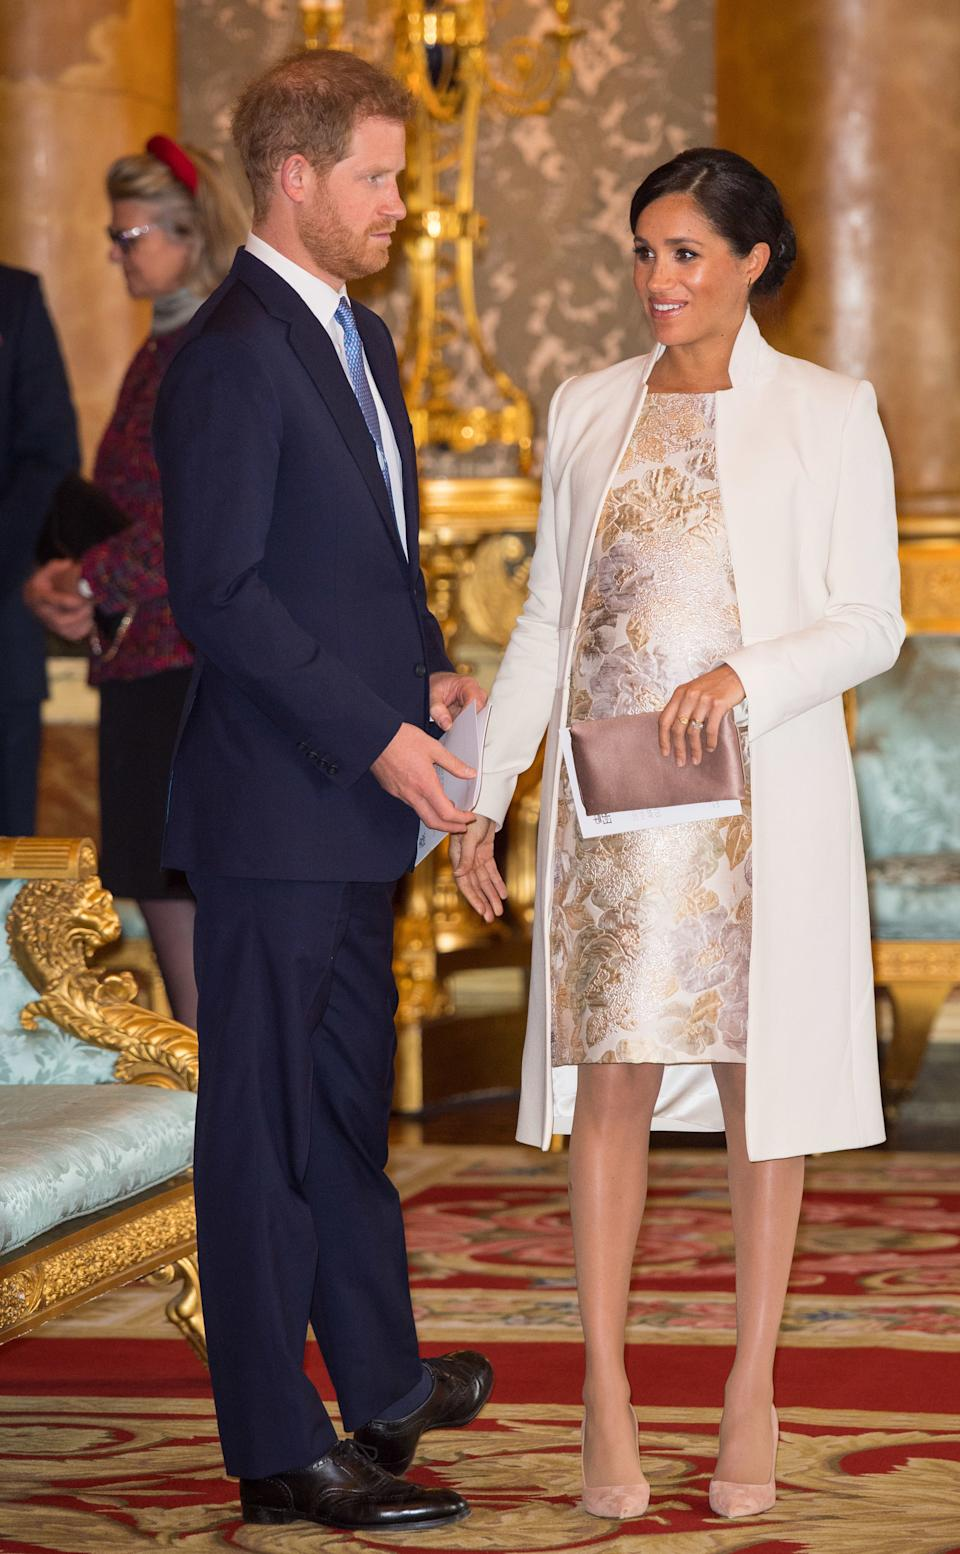 Wearing an Amanda Wakeley outfit and a clutch by Wilbur and Gussie. (Getty Images)